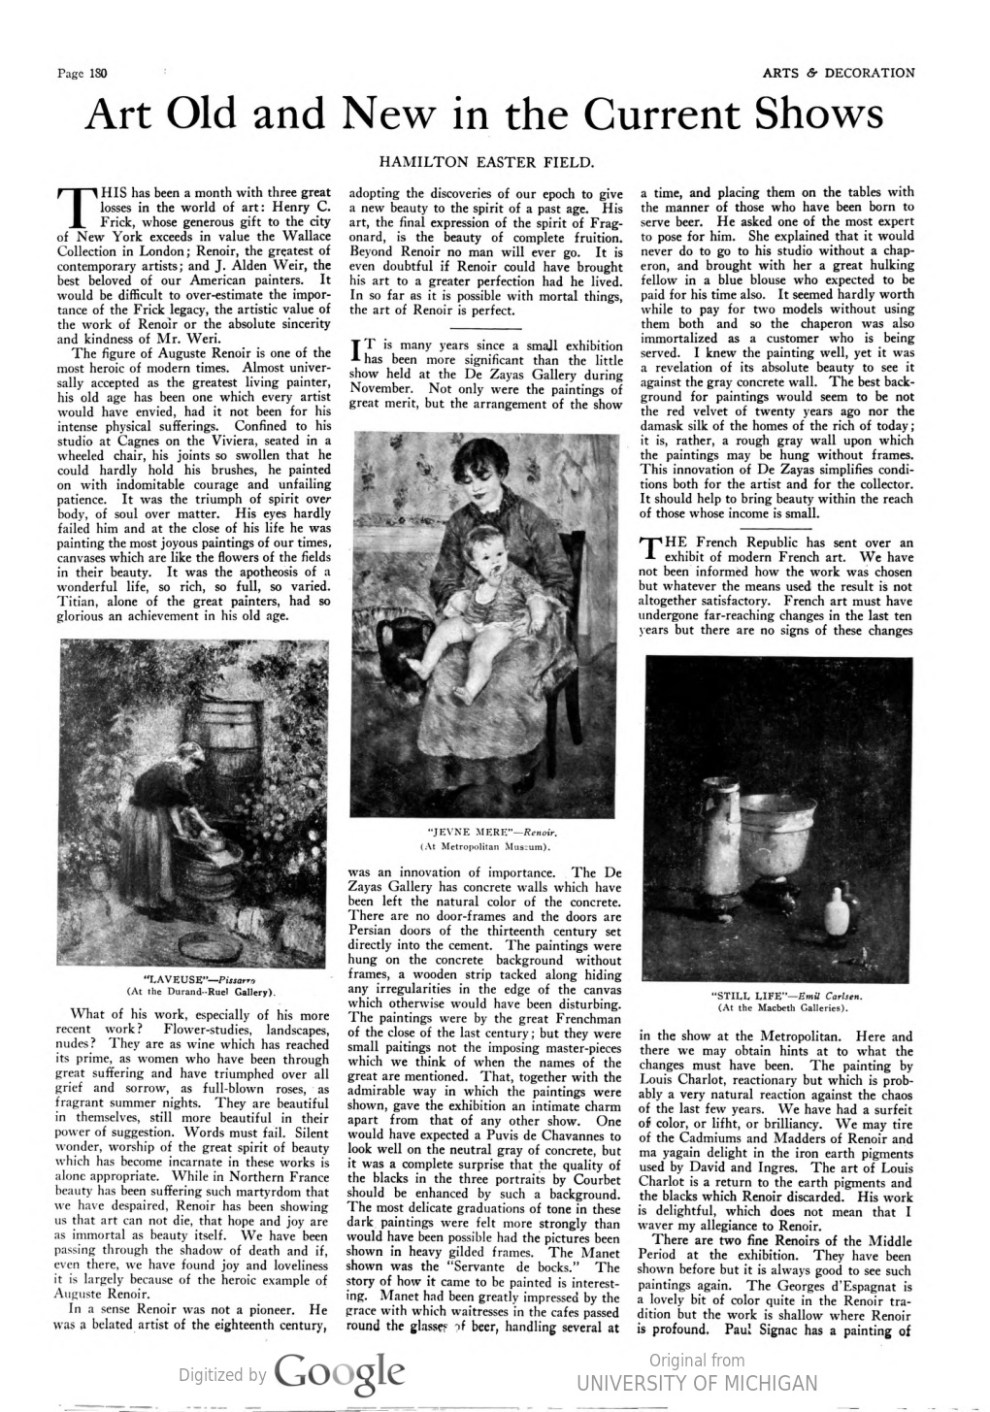 """Arts and Decoration, New York, NY, """"Art old and new in the current shows"""" by Hamilton Easter Field, January, 1920, Volume 12, Number 3, illustrated: b&w on page 180"""